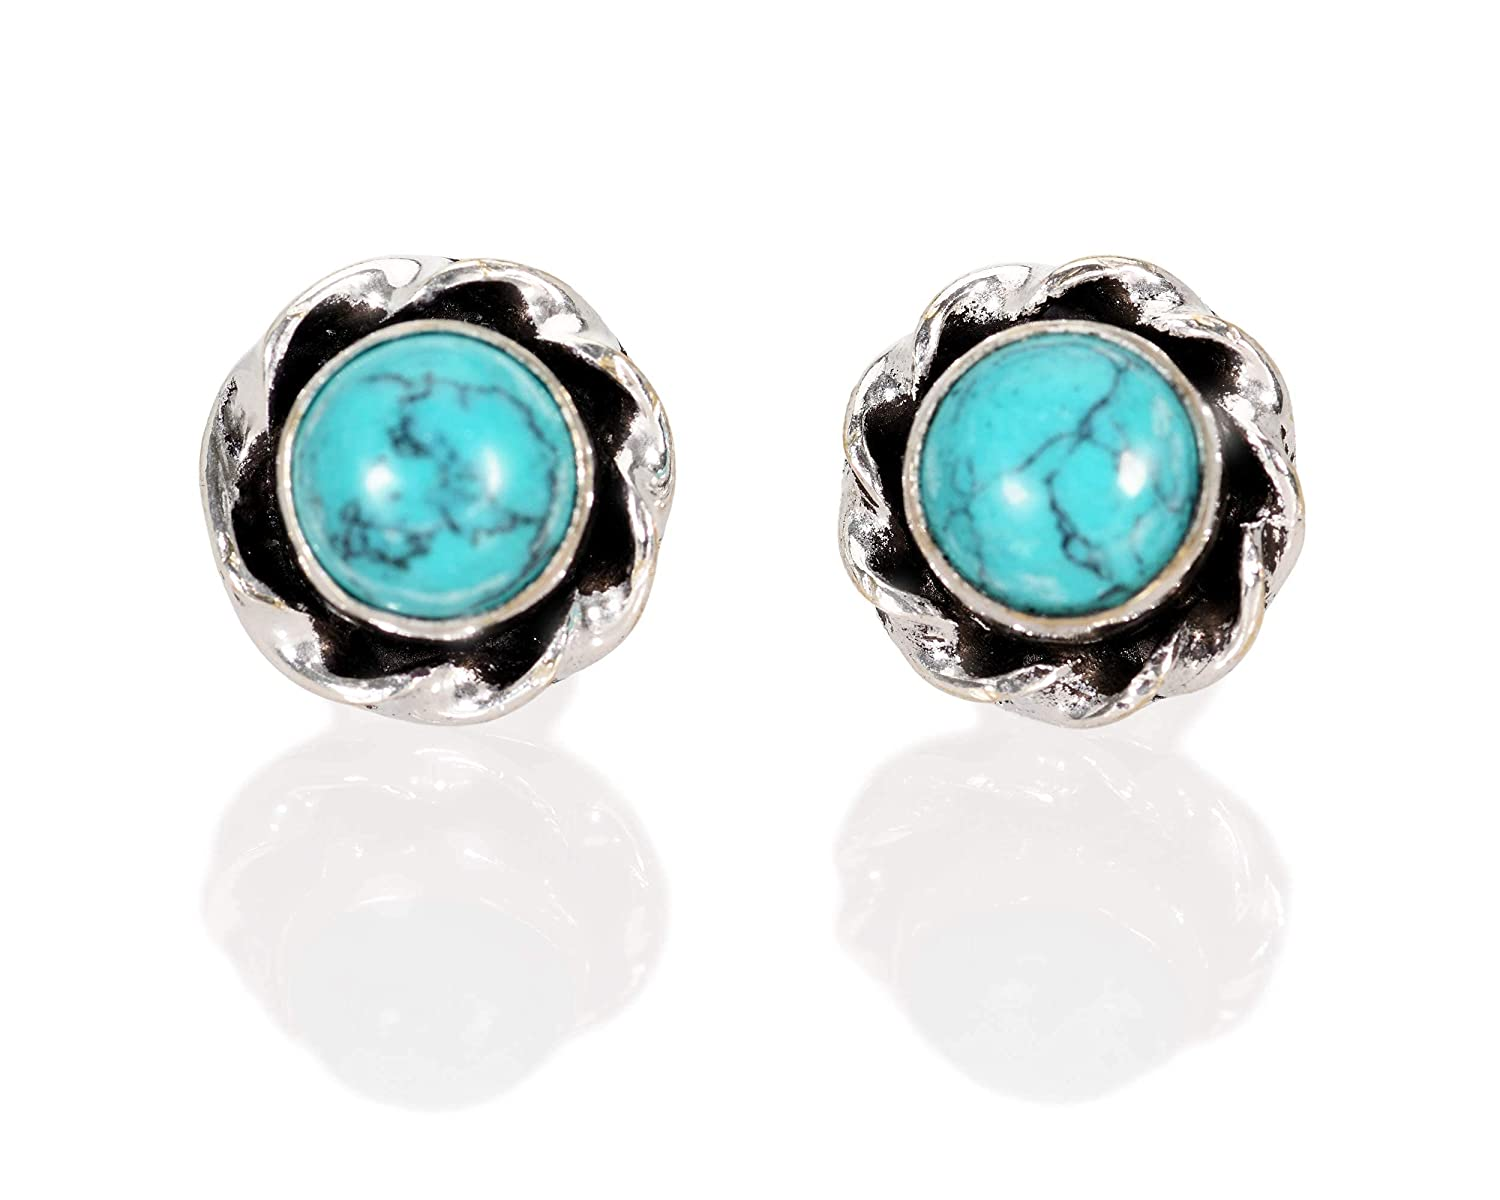 Turquoise Stud Earrings Silver Plated Ear Small Cash special price Pair R OFFicial store Studs of